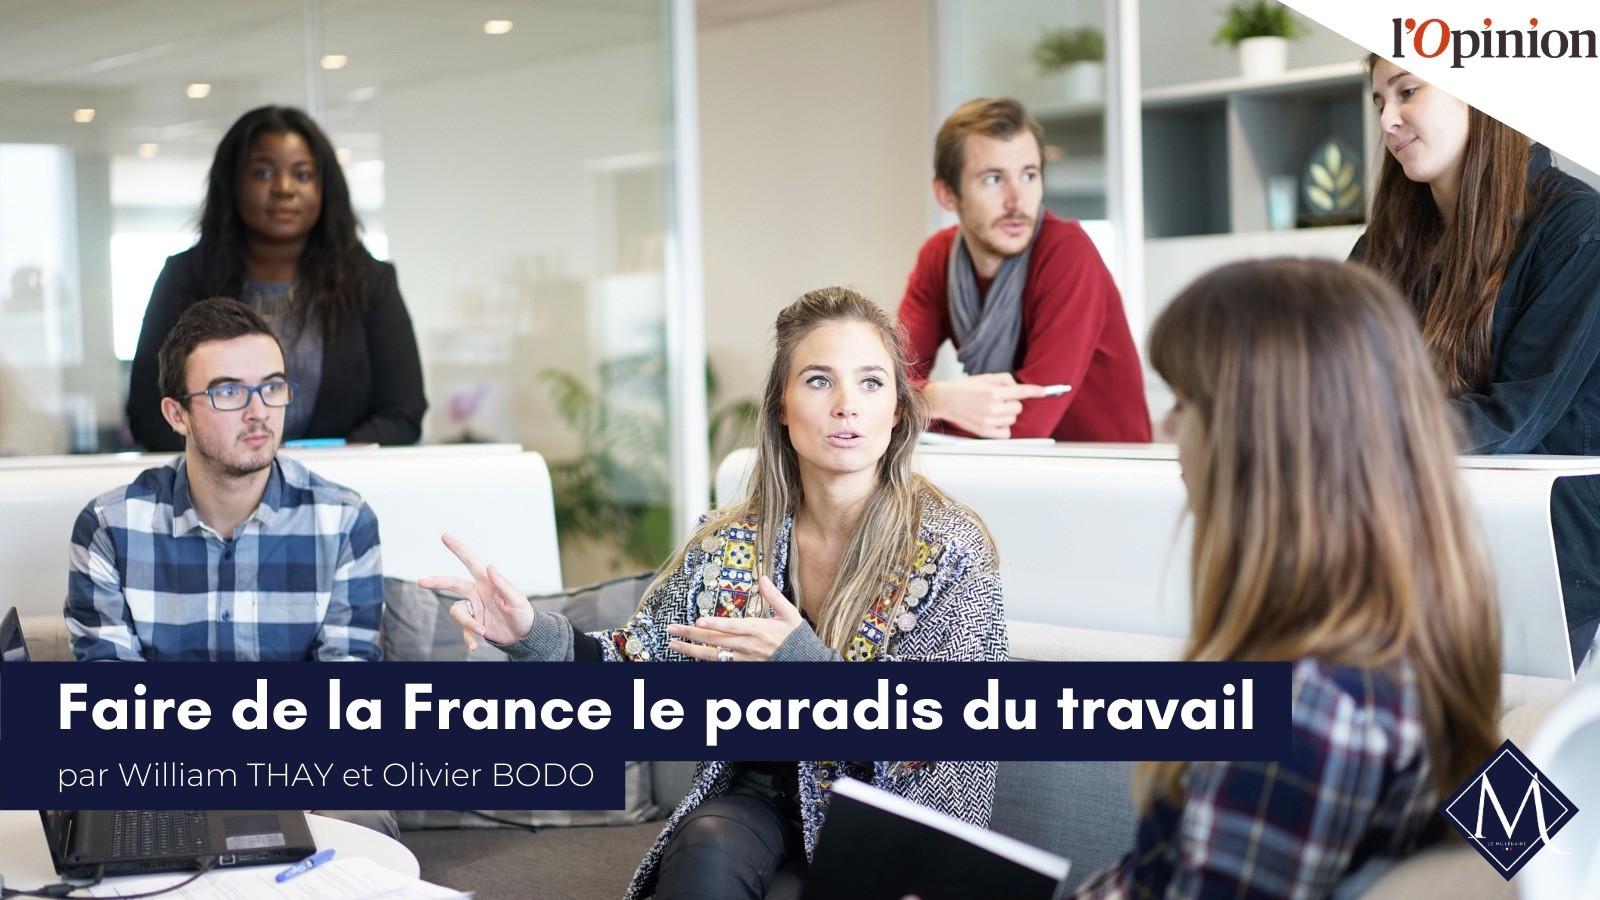 Retrouvez la tribune de William Thay et Olivier Bodo dans l'Opinion : « Faire de la France le paradis du travail »